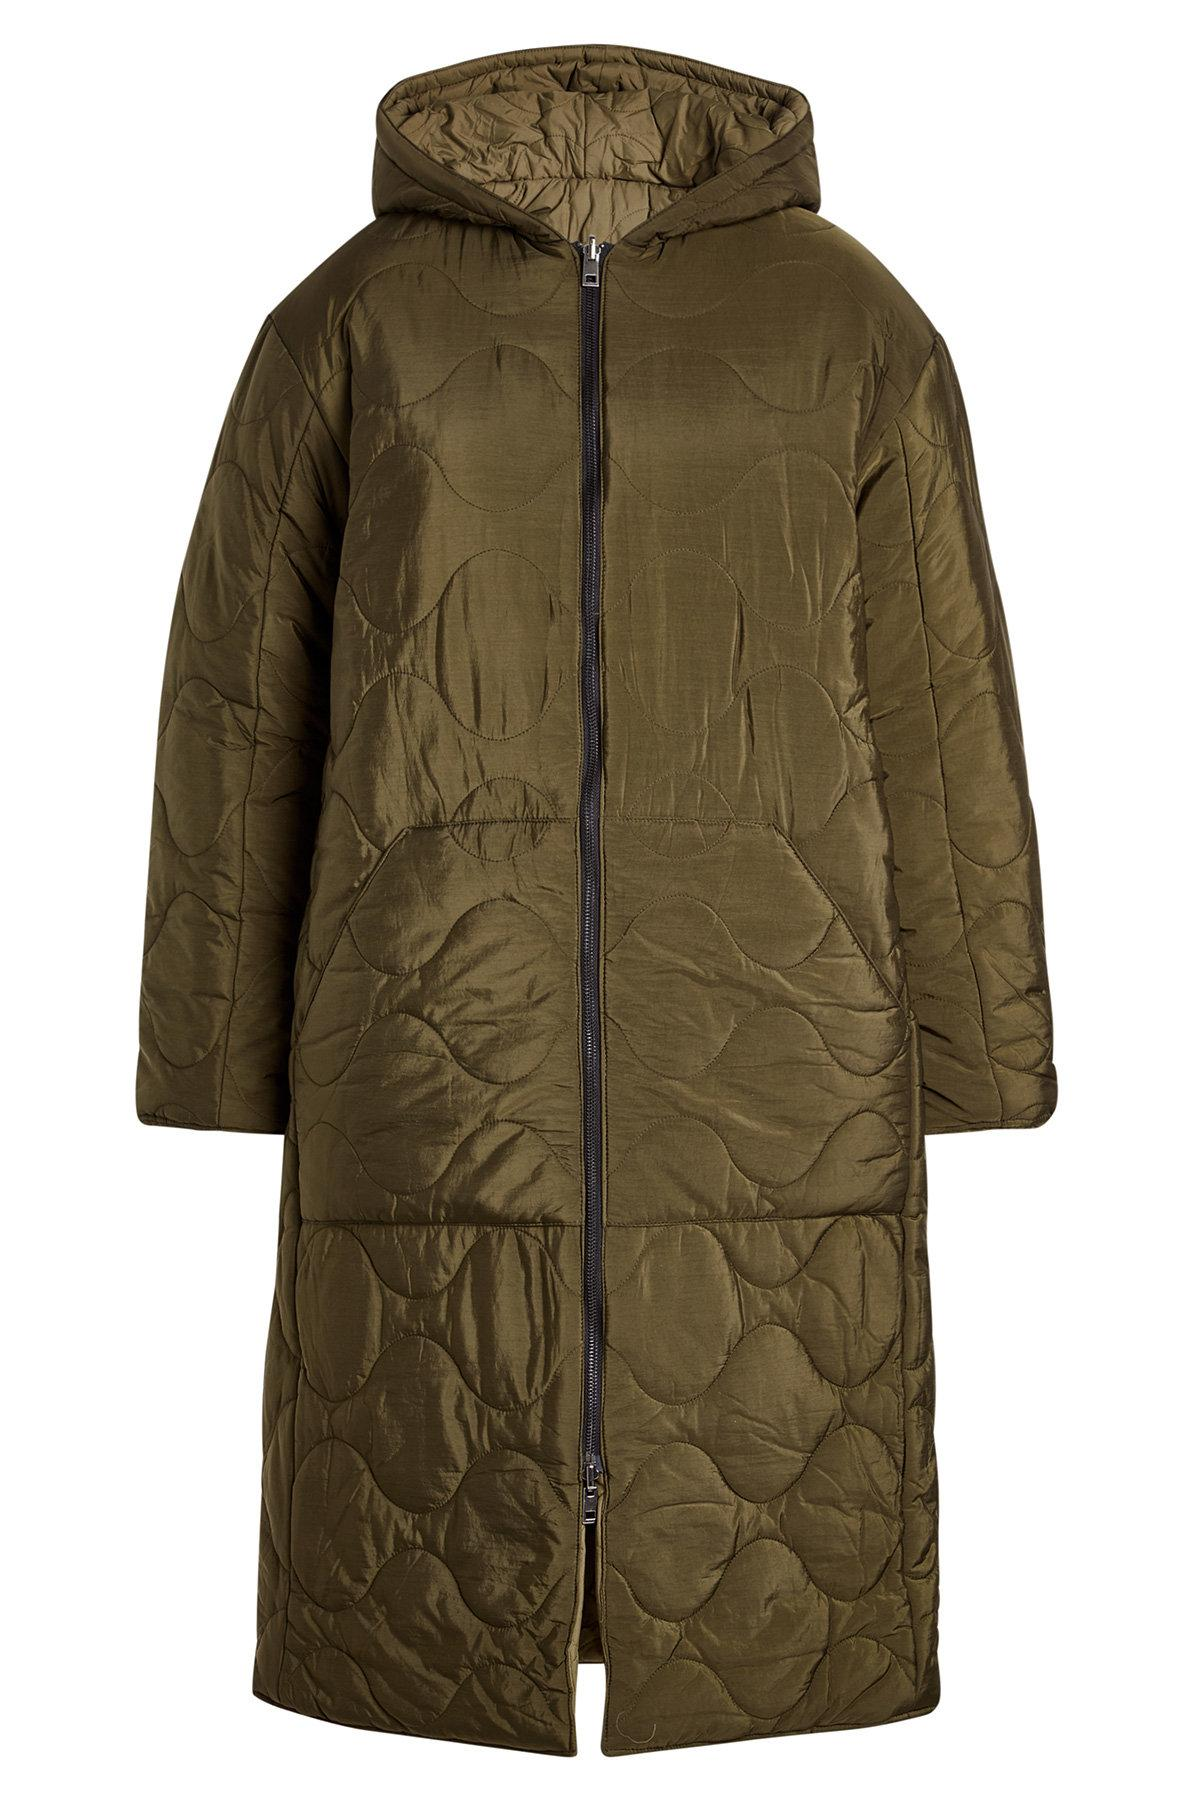 Zadig & Voltaire Quilted Coat With Hood In Black